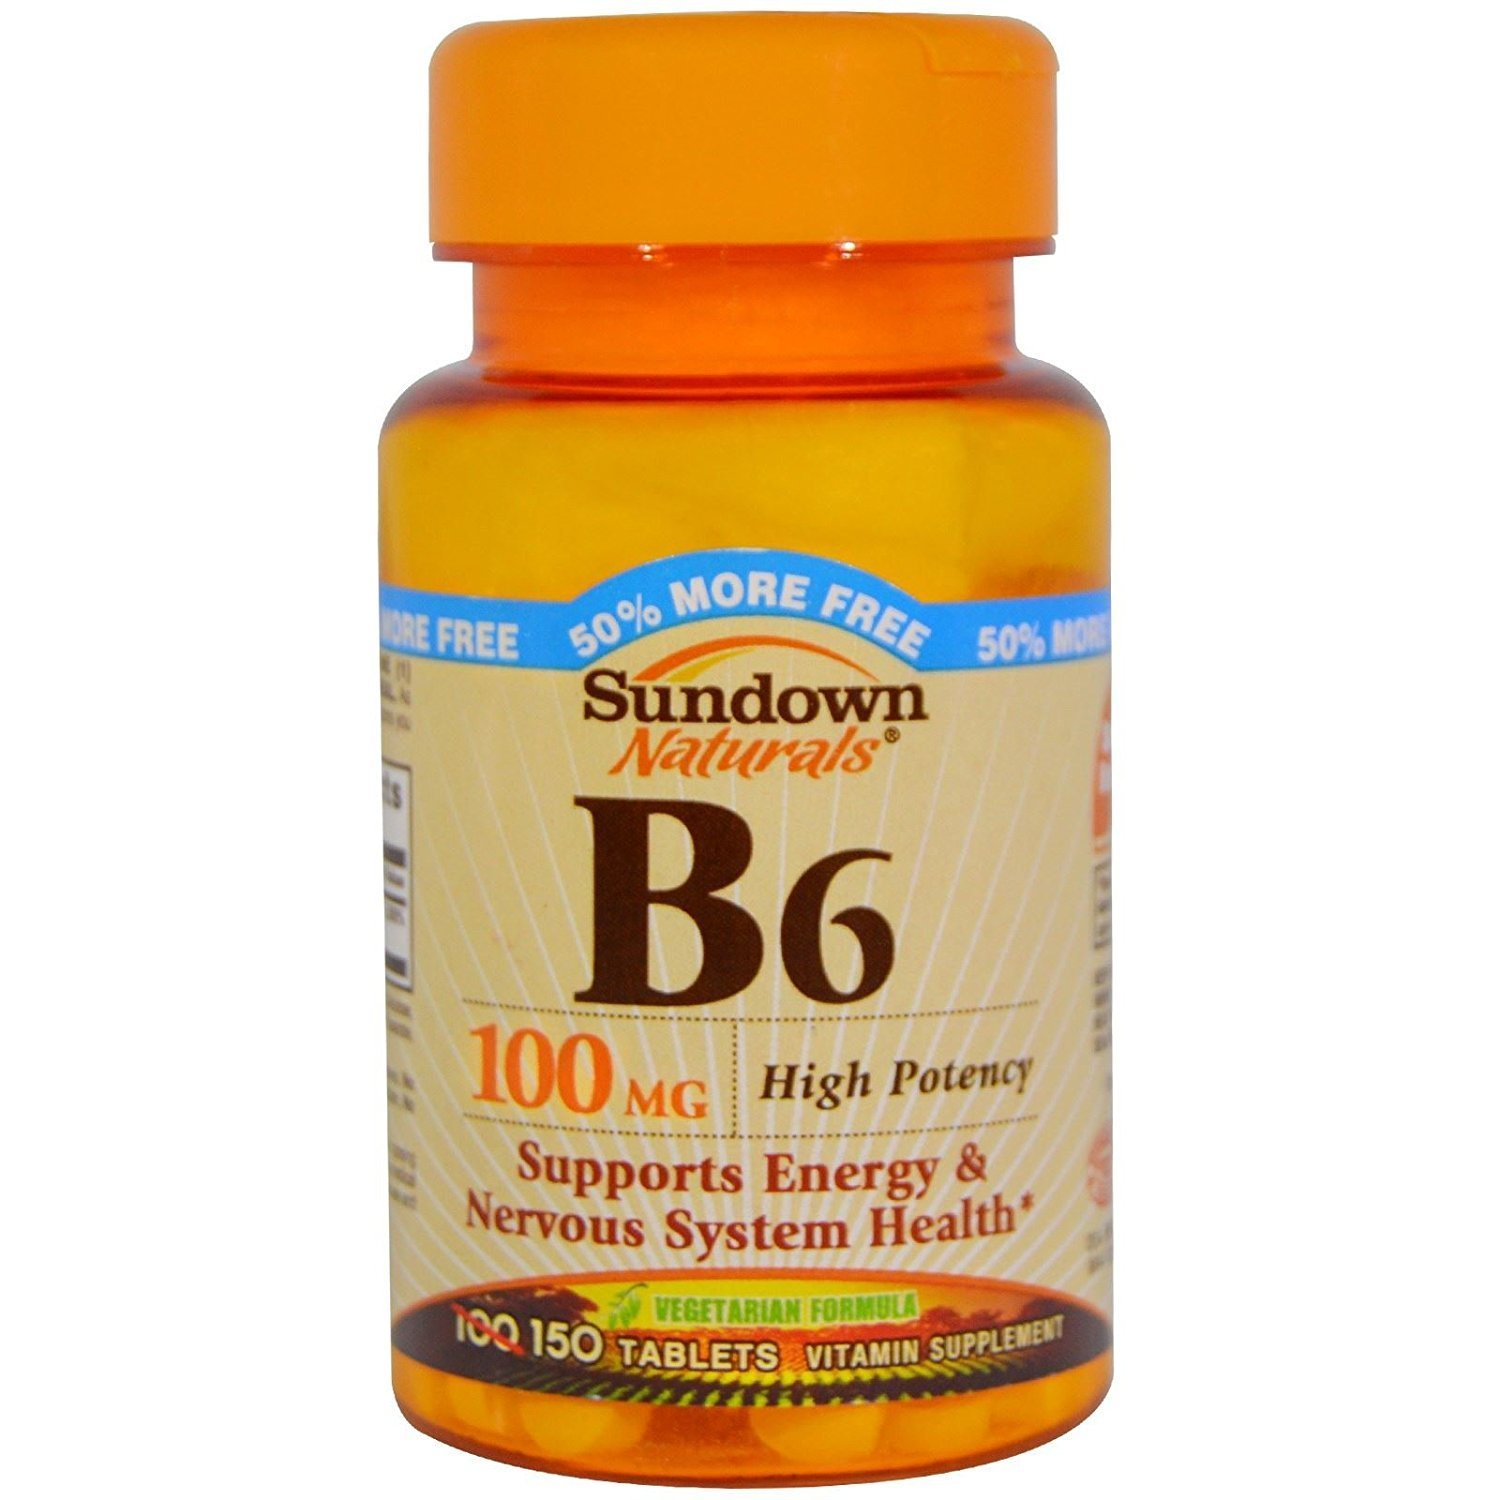 Sundown Naturals B6 100mg - 150 tablets